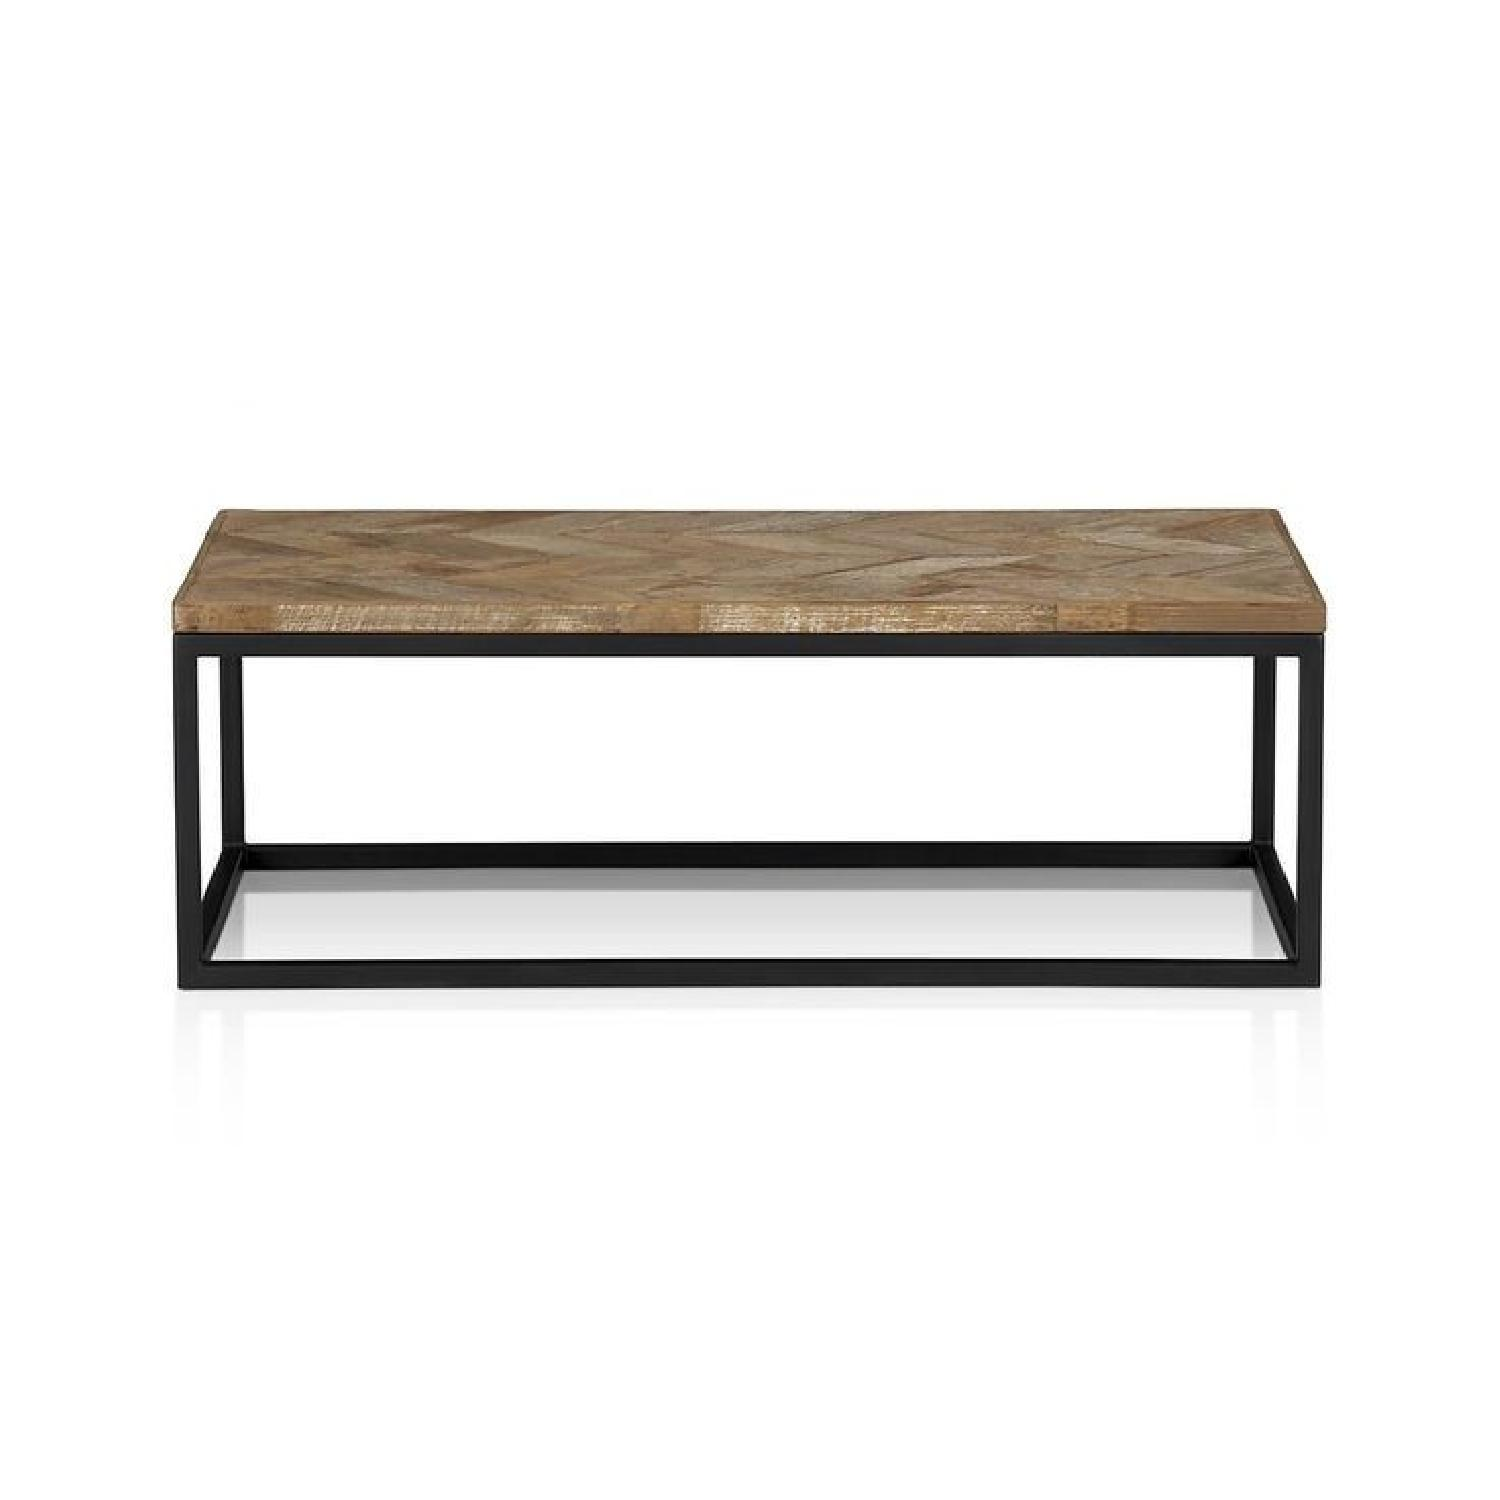 Crate & Barrel Dixon Coffee Table - image-0